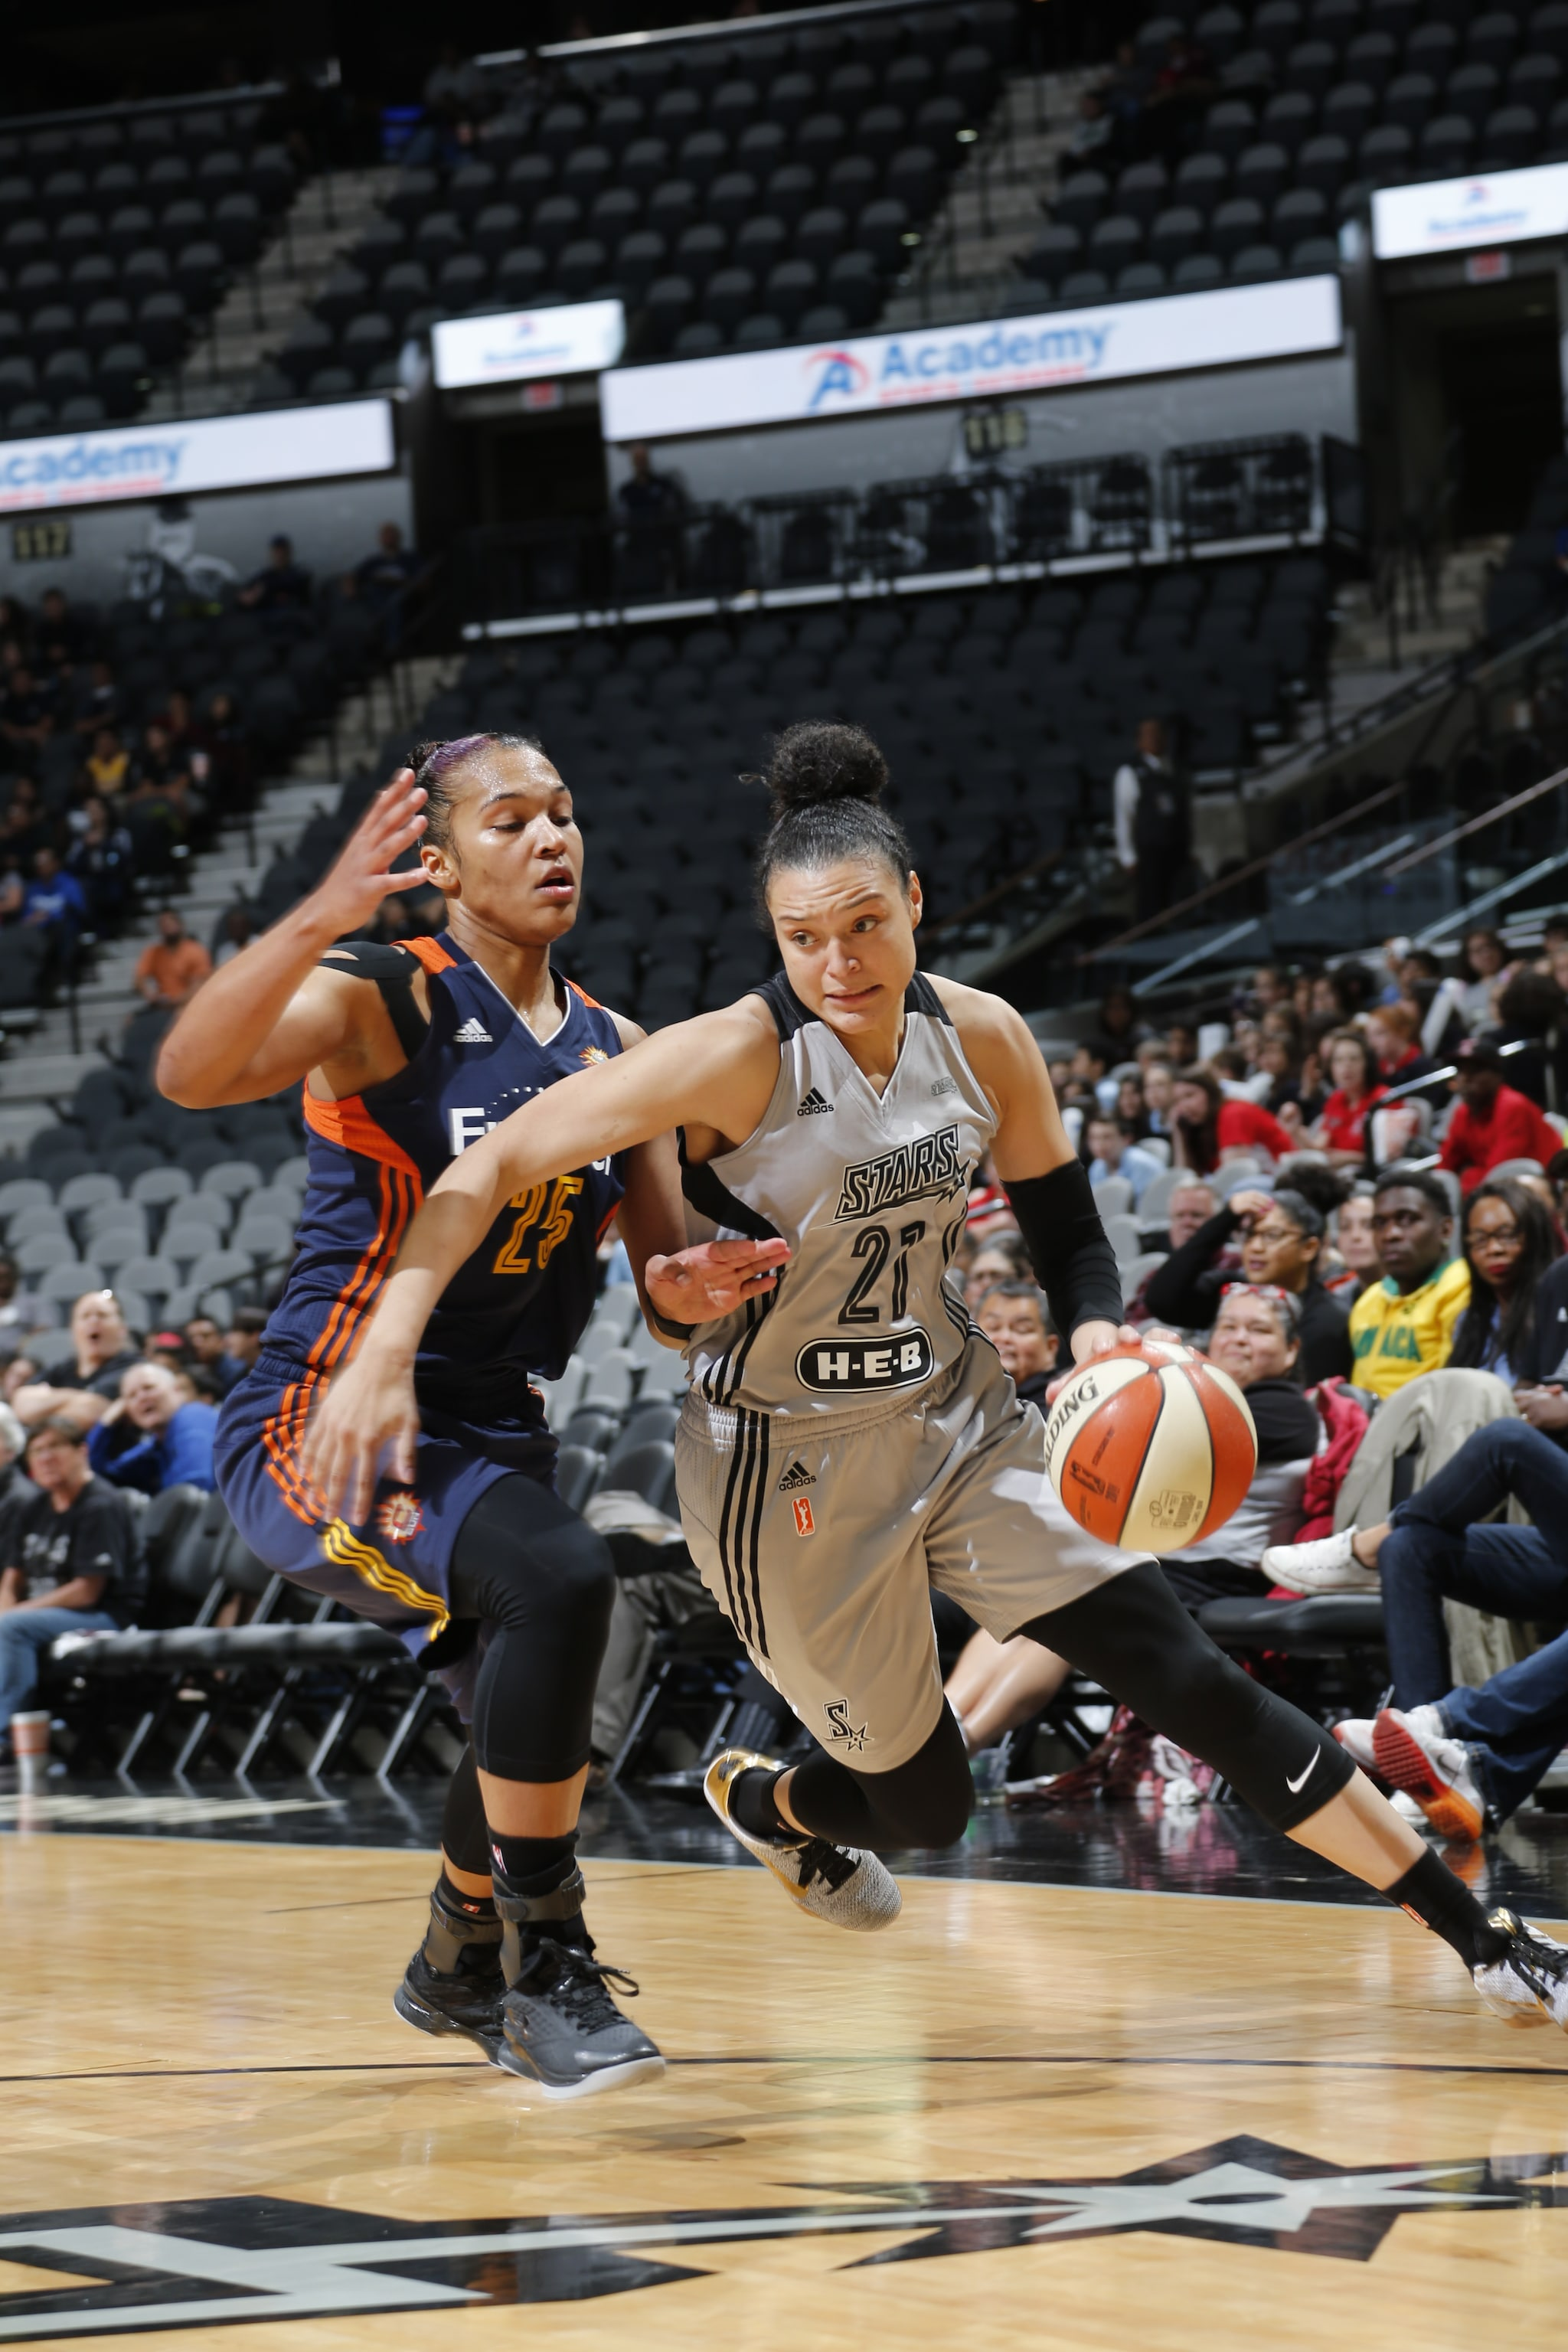 SAN ANTONIO, TX - MAY 19: Kayla McBride #21 of the San Antonio Stars drives to the basket against the Connecticut Sun on May 19, 2016 at AT&T Center in San Antonio, Texas. NOTE TO USER: User expressly acknowledges and agrees that, by downloading and or using this Photograph, user is consenting to the terms and conditions of the Getty Images License Agreement. Mandatory Copyright Notice: Copyright 2016 NBAE (Photo by Chris Covatta/NBAE via Getty Images)